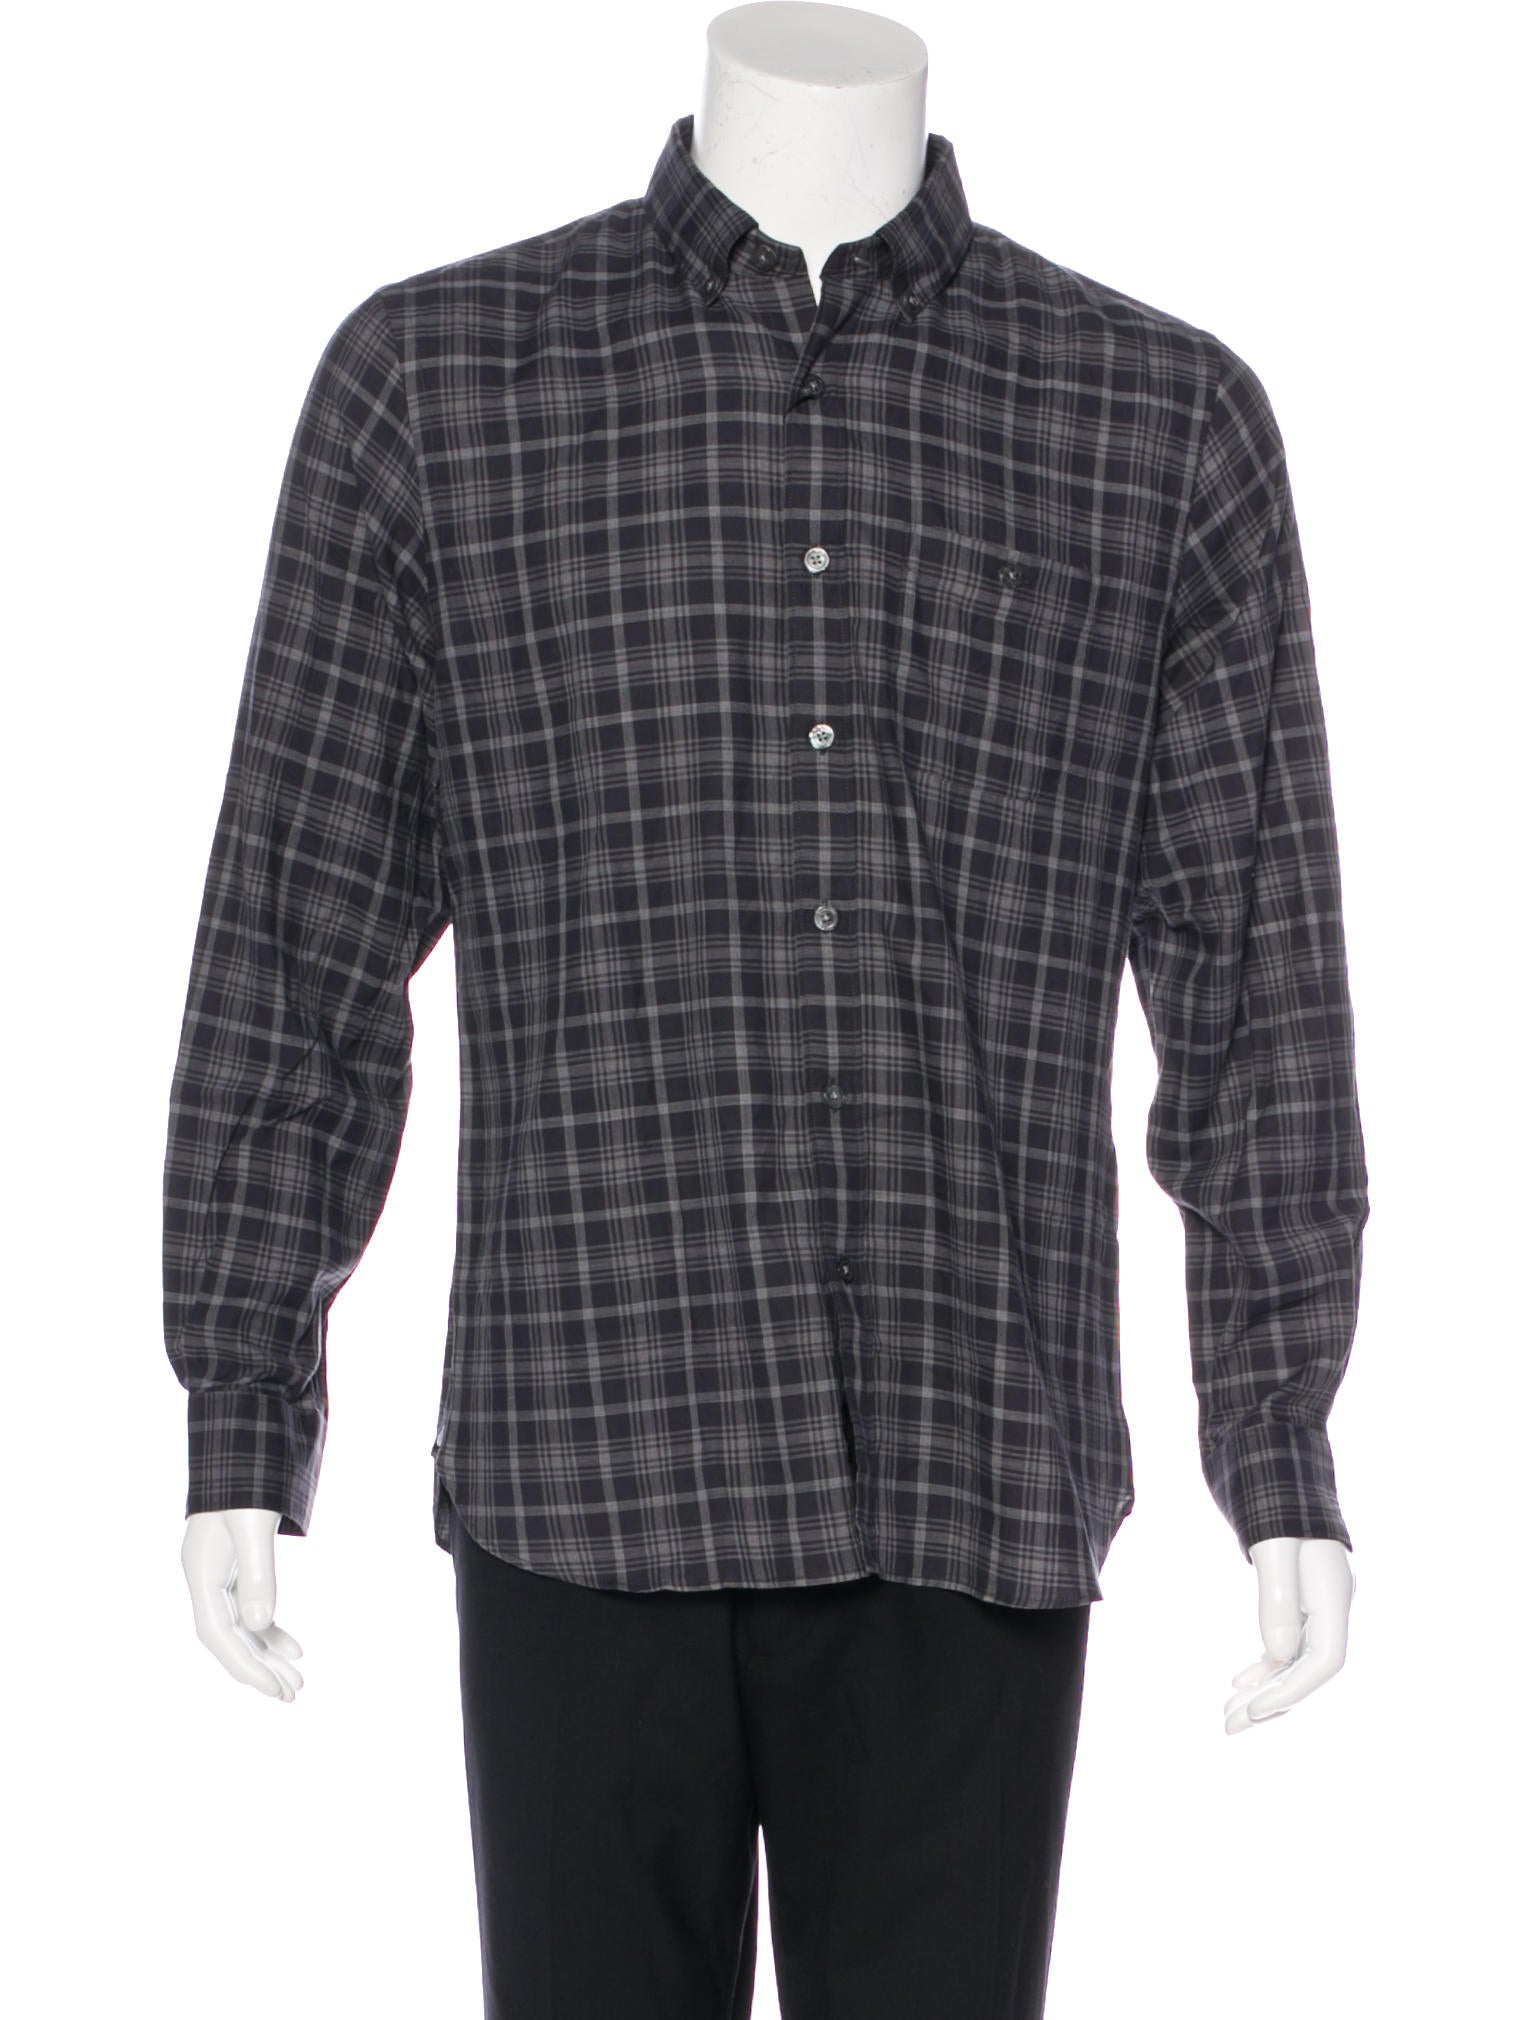 Todd snyder plaid woven shirt w tags clothing Woven t shirt tags